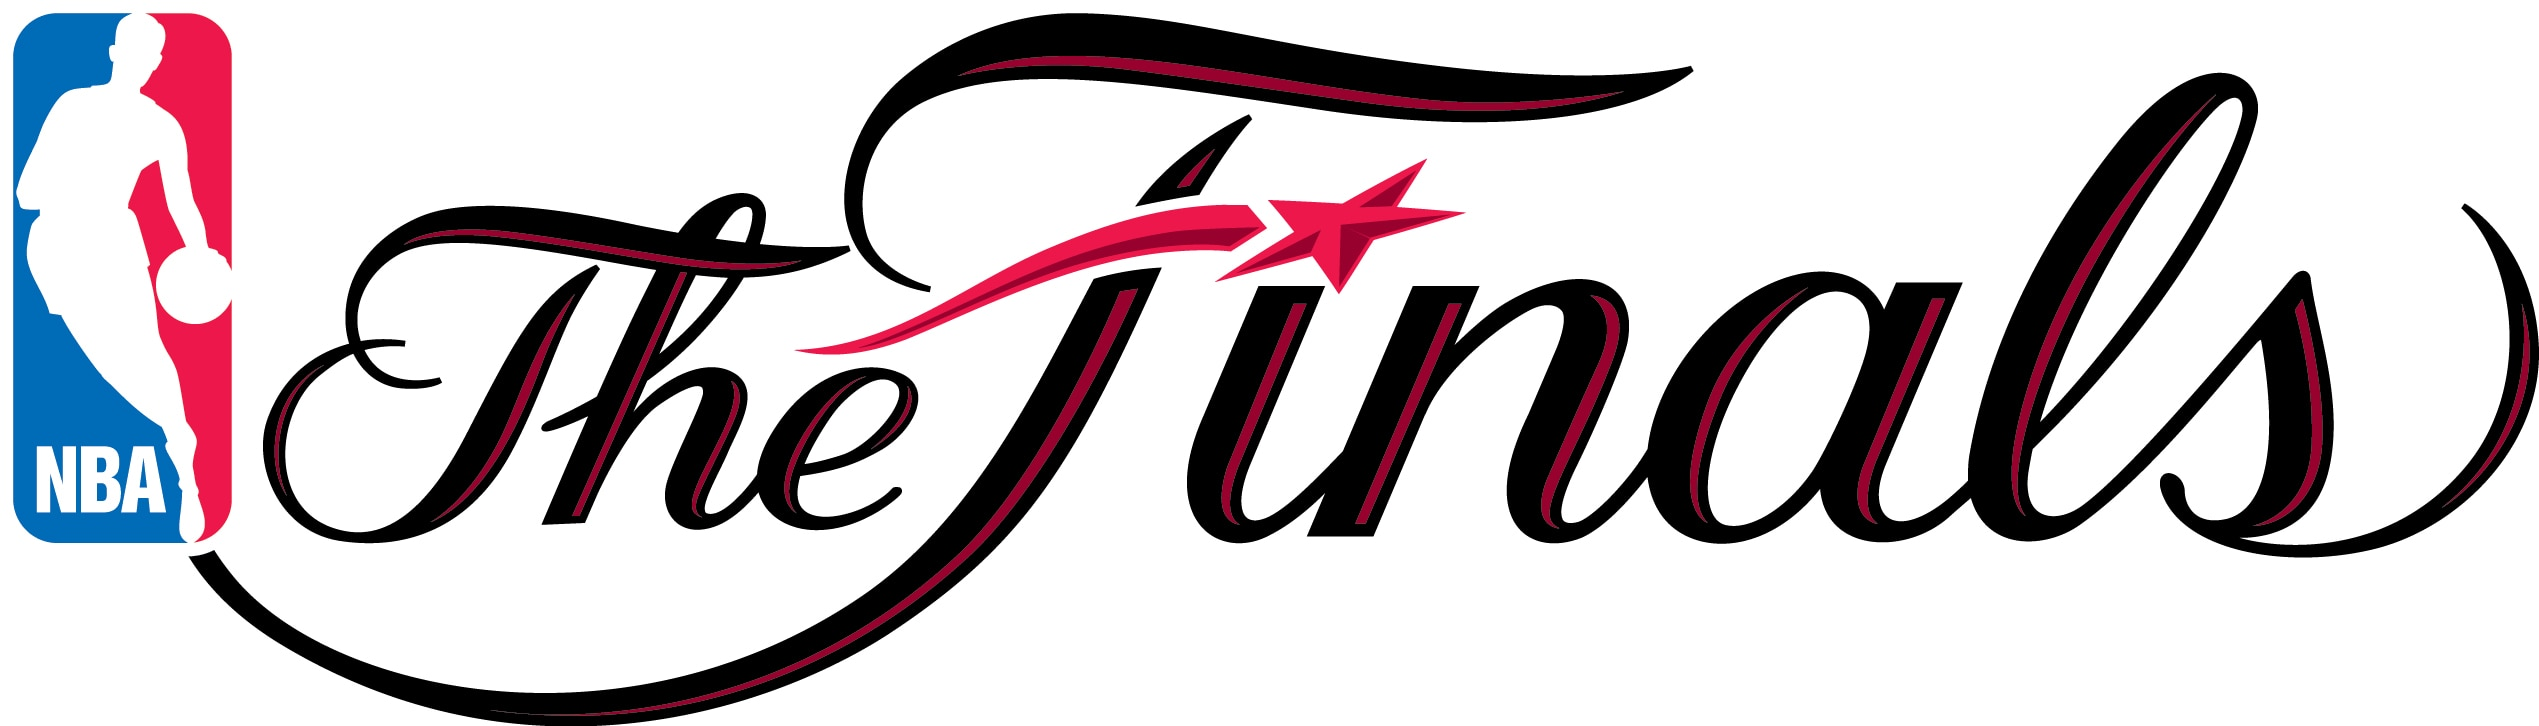 File:The NBA Finals logo.svg - Wikimedia Commons